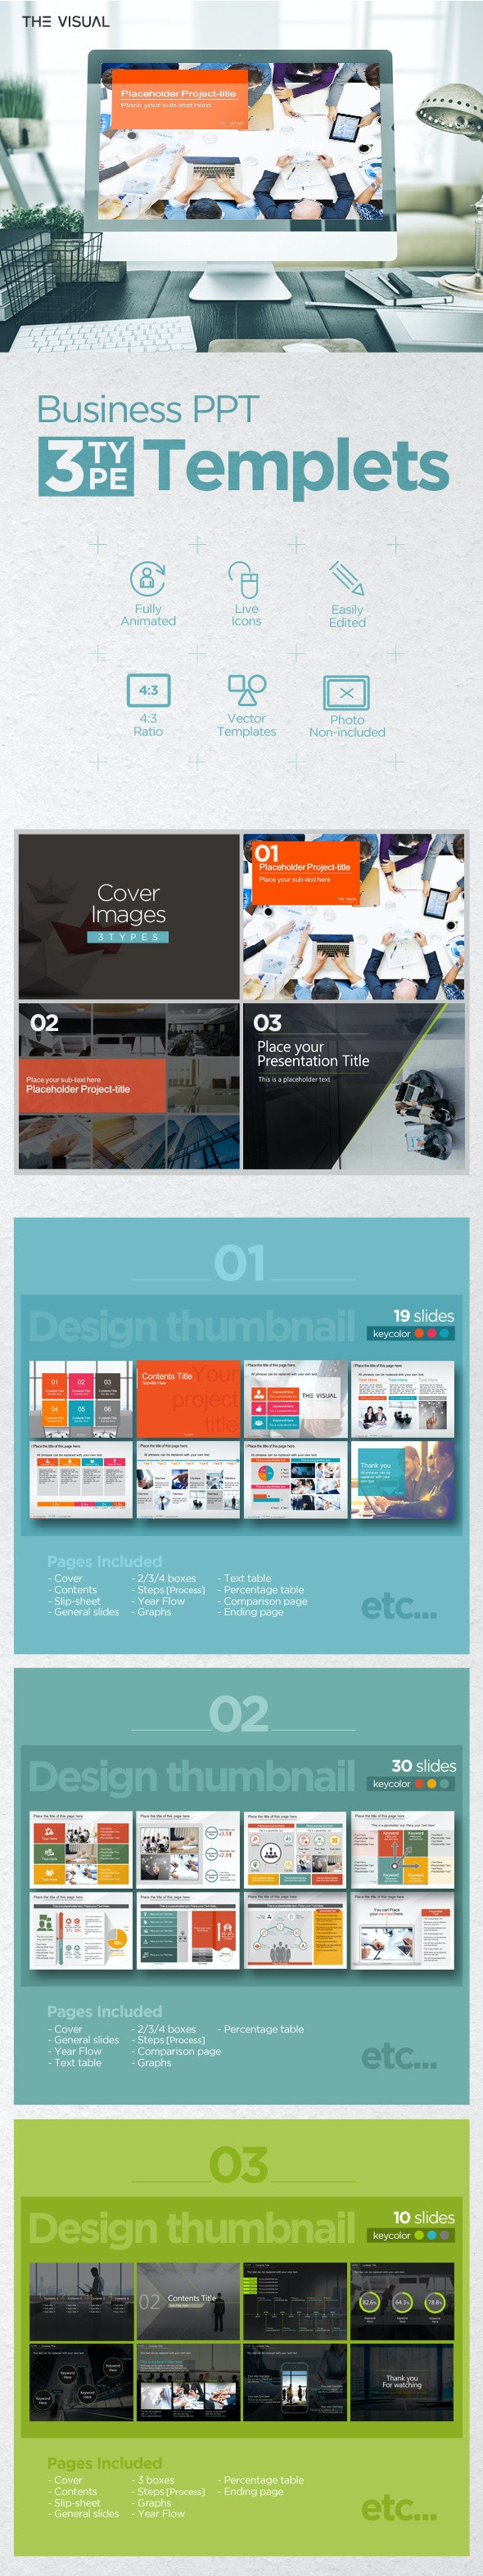 THE VISUAL_POWERPOINT 01 - Business PowerPoint Templates